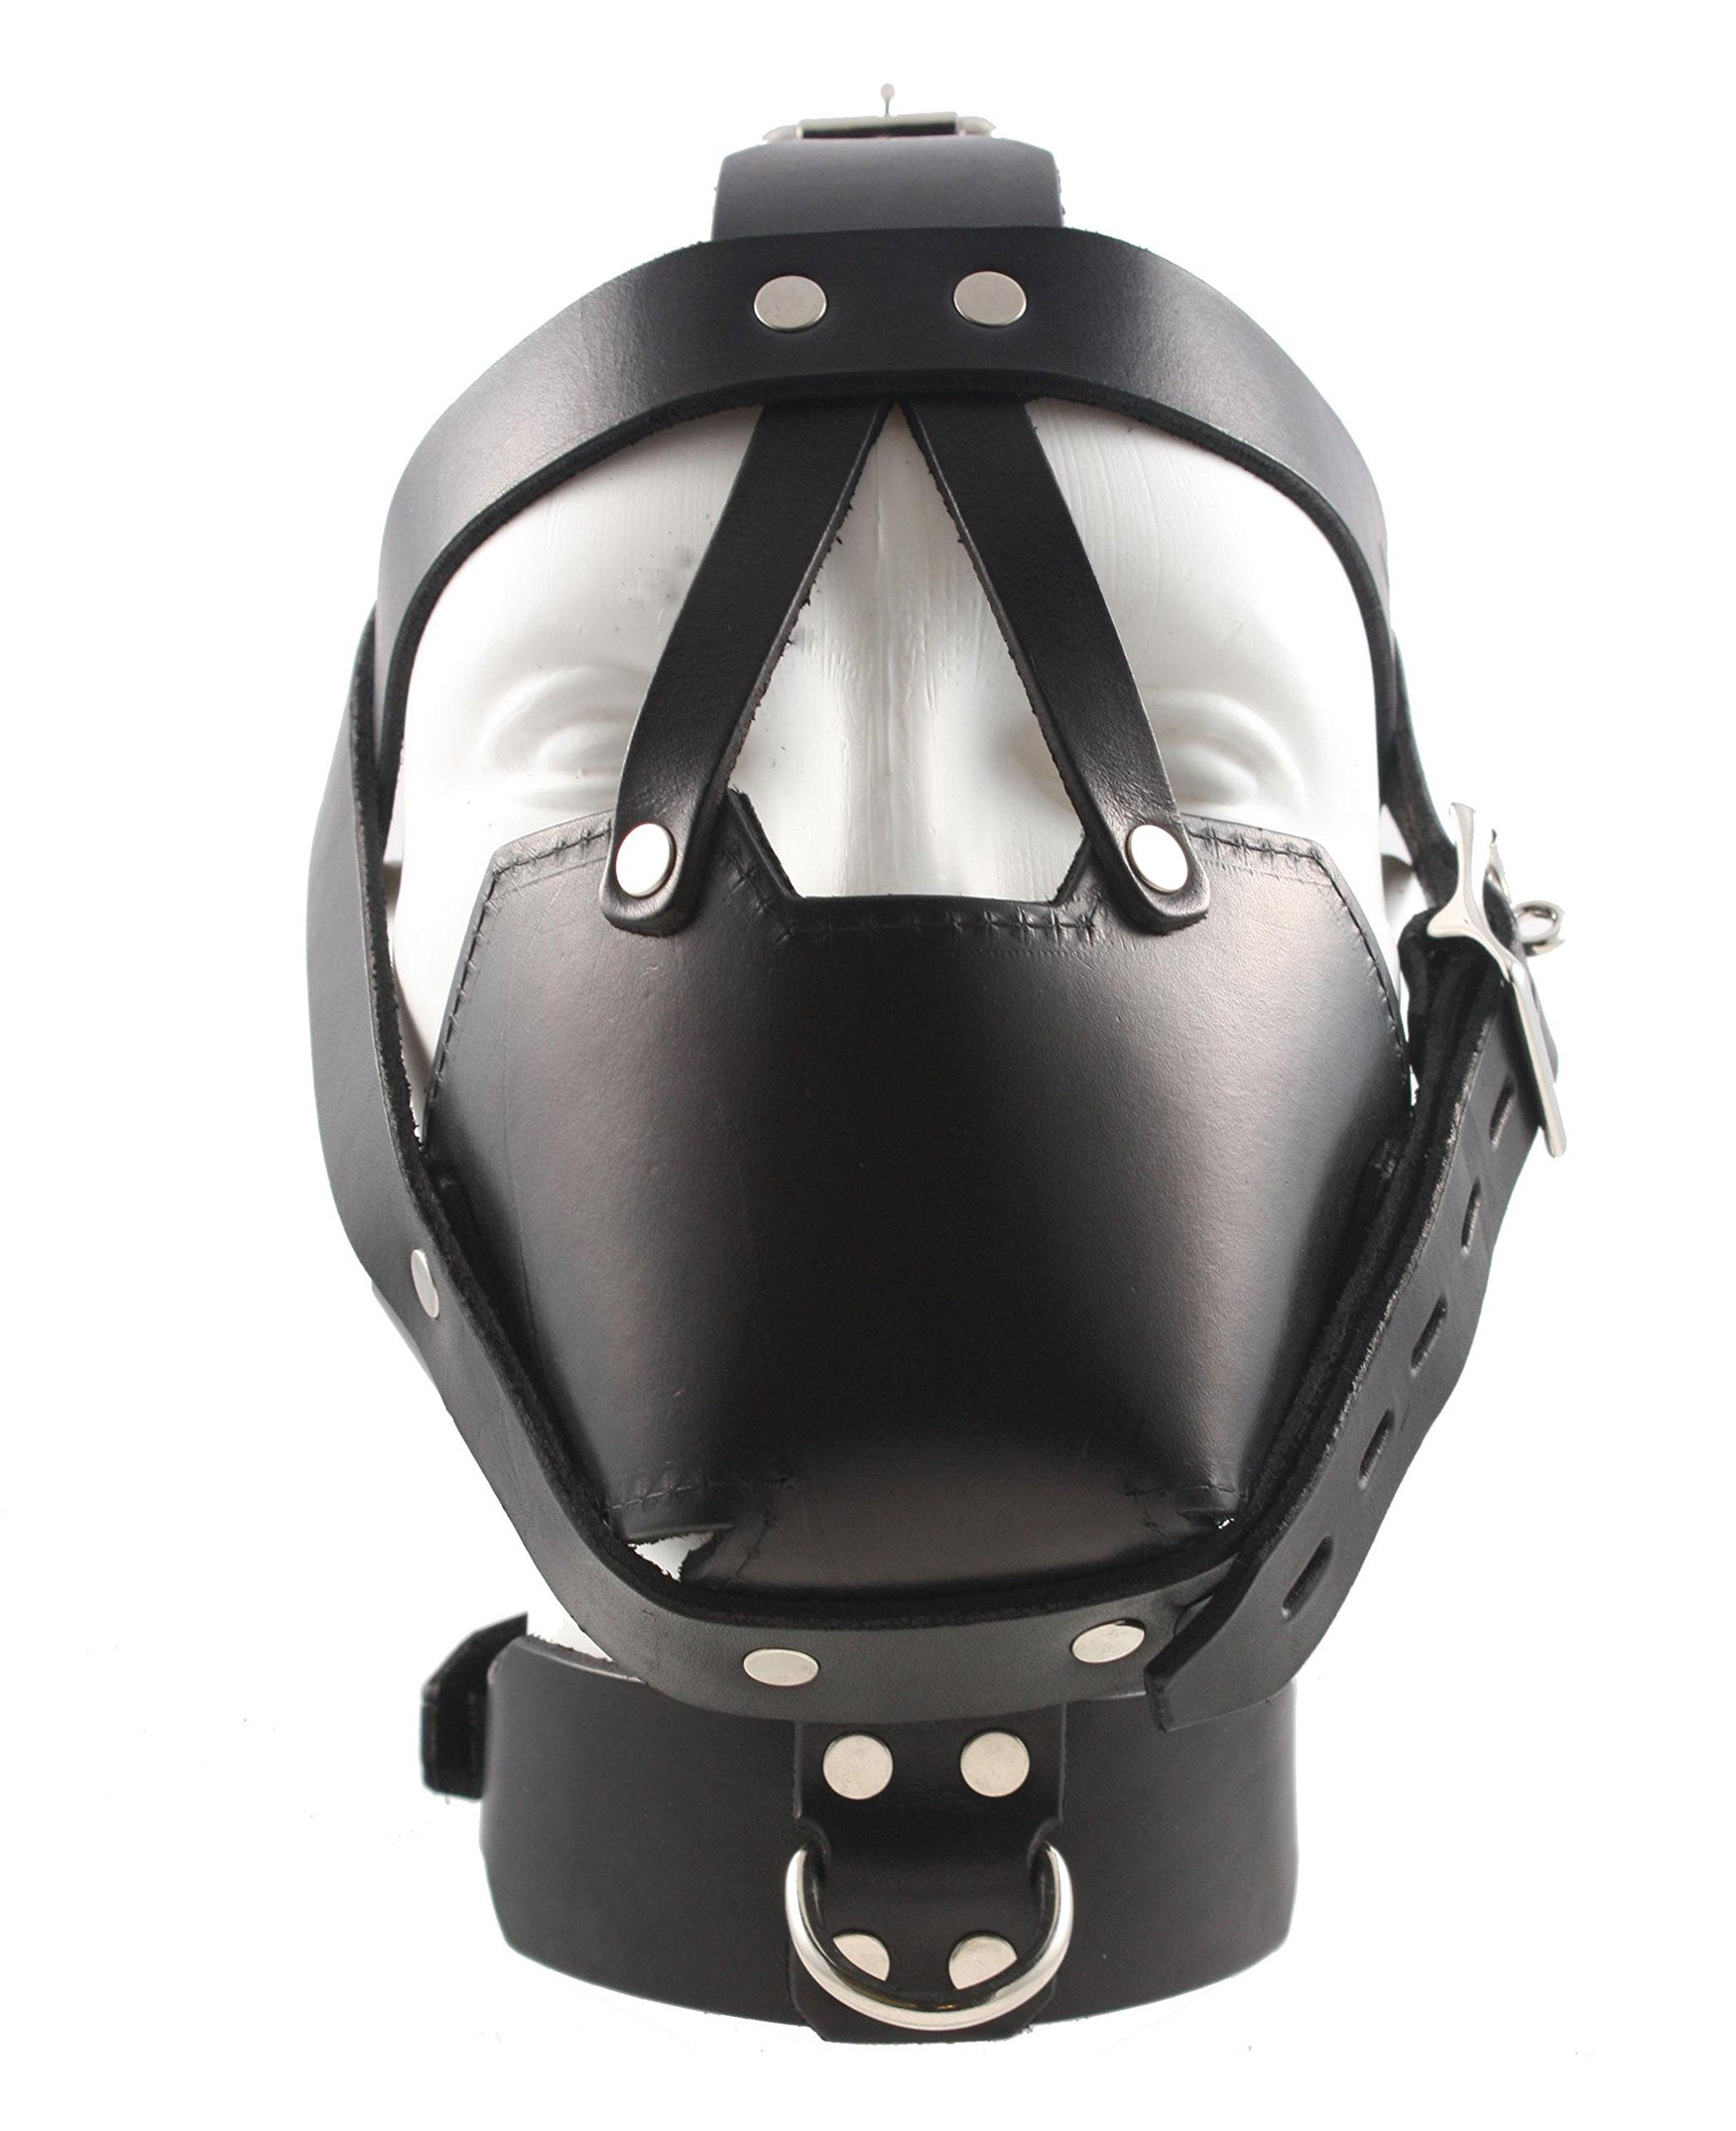 Mr-S-Leather - Fetters Head Harness Muzzle with Locking Buckles & Padded Mouth - Men's by Mr-S-Leather